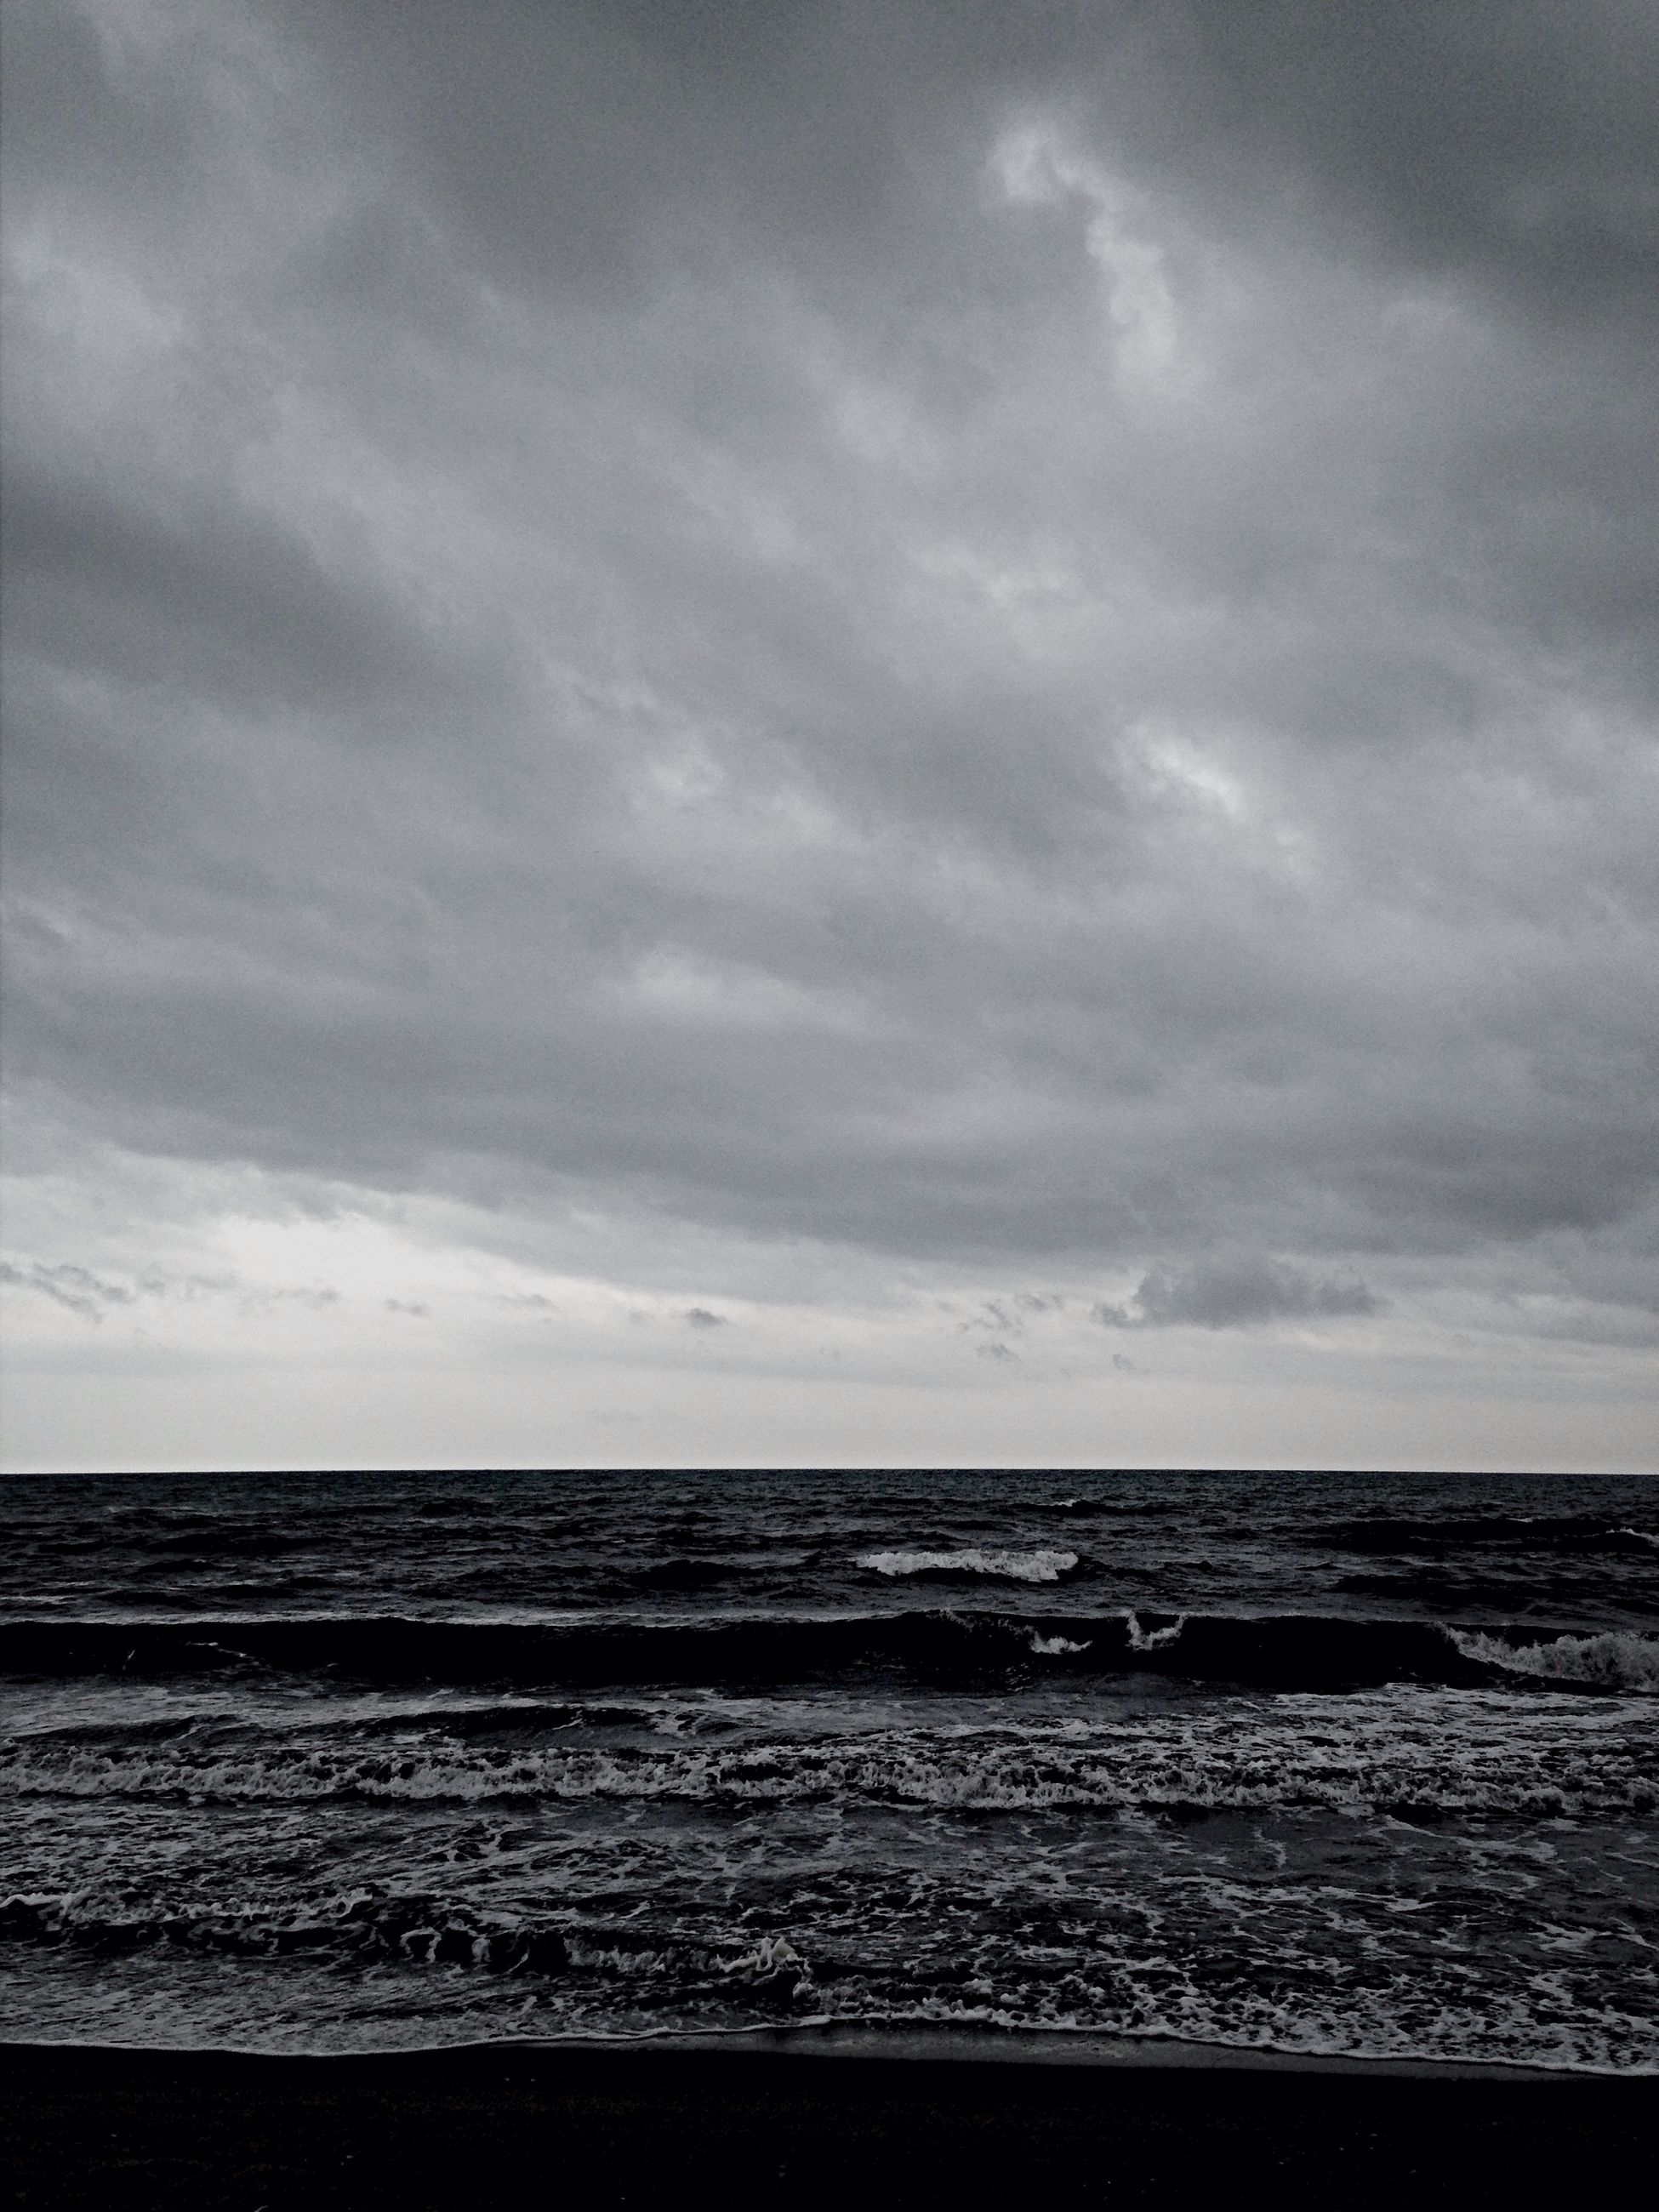 sea, horizon over water, sky, beach, water, tranquil scene, tranquility, scenics, beauty in nature, cloud - sky, shore, nature, cloudy, cloud, idyllic, sand, coastline, overcast, outdoors, remote